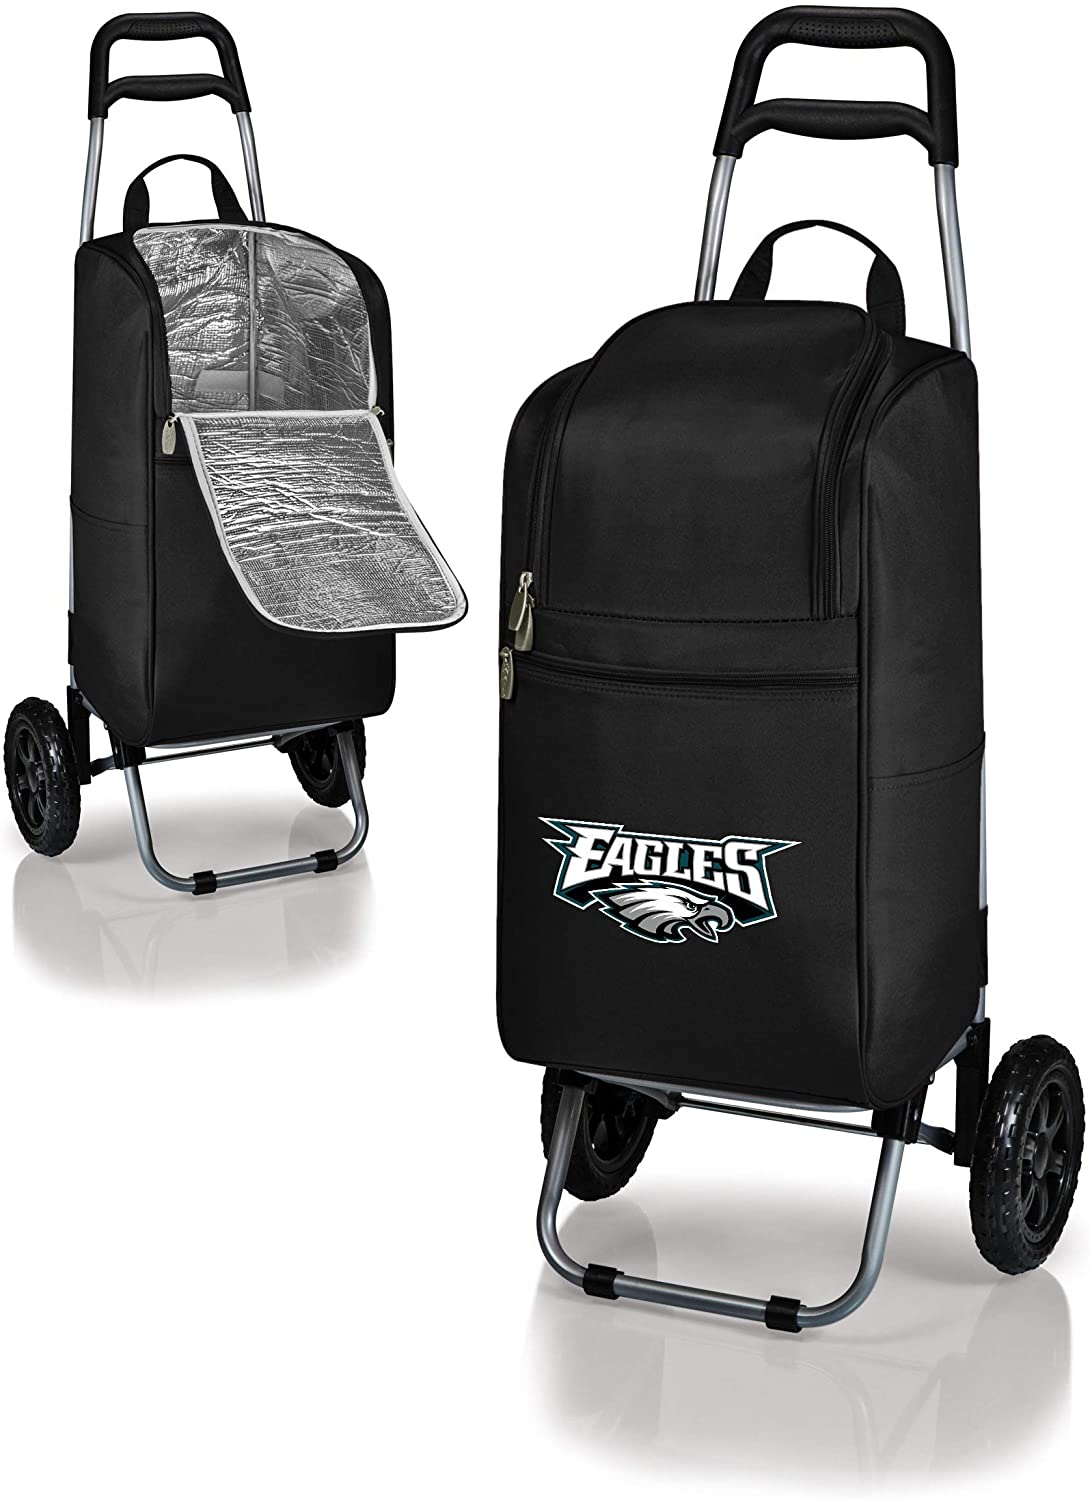 MISC 2 Piece Black White NFL Themed Cart Cooler, Philadelphia Eagles Beer Bag, Teal NFC Folding Trolley Portable Ultra Durable Football Logo Gift Tailgate Beverage Bag Sports, Polyester